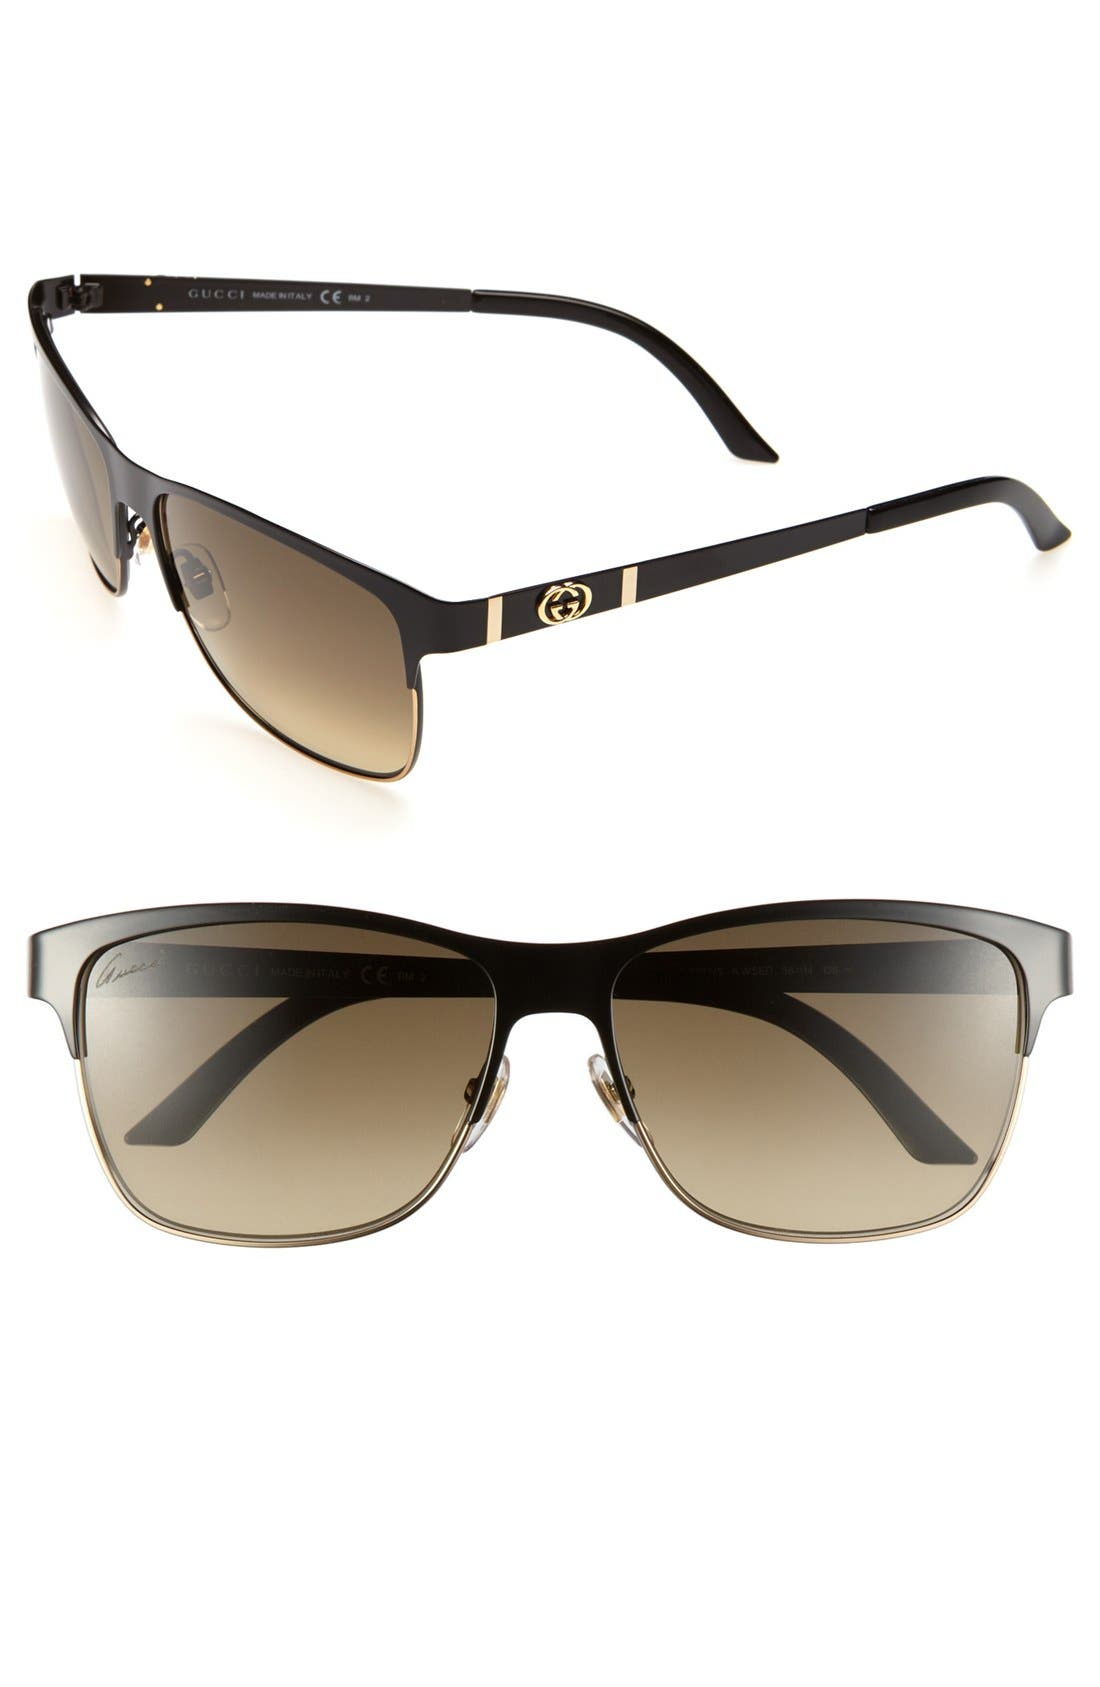 Alternate Image 1 Selected - Gucci 58mm Sunglasses